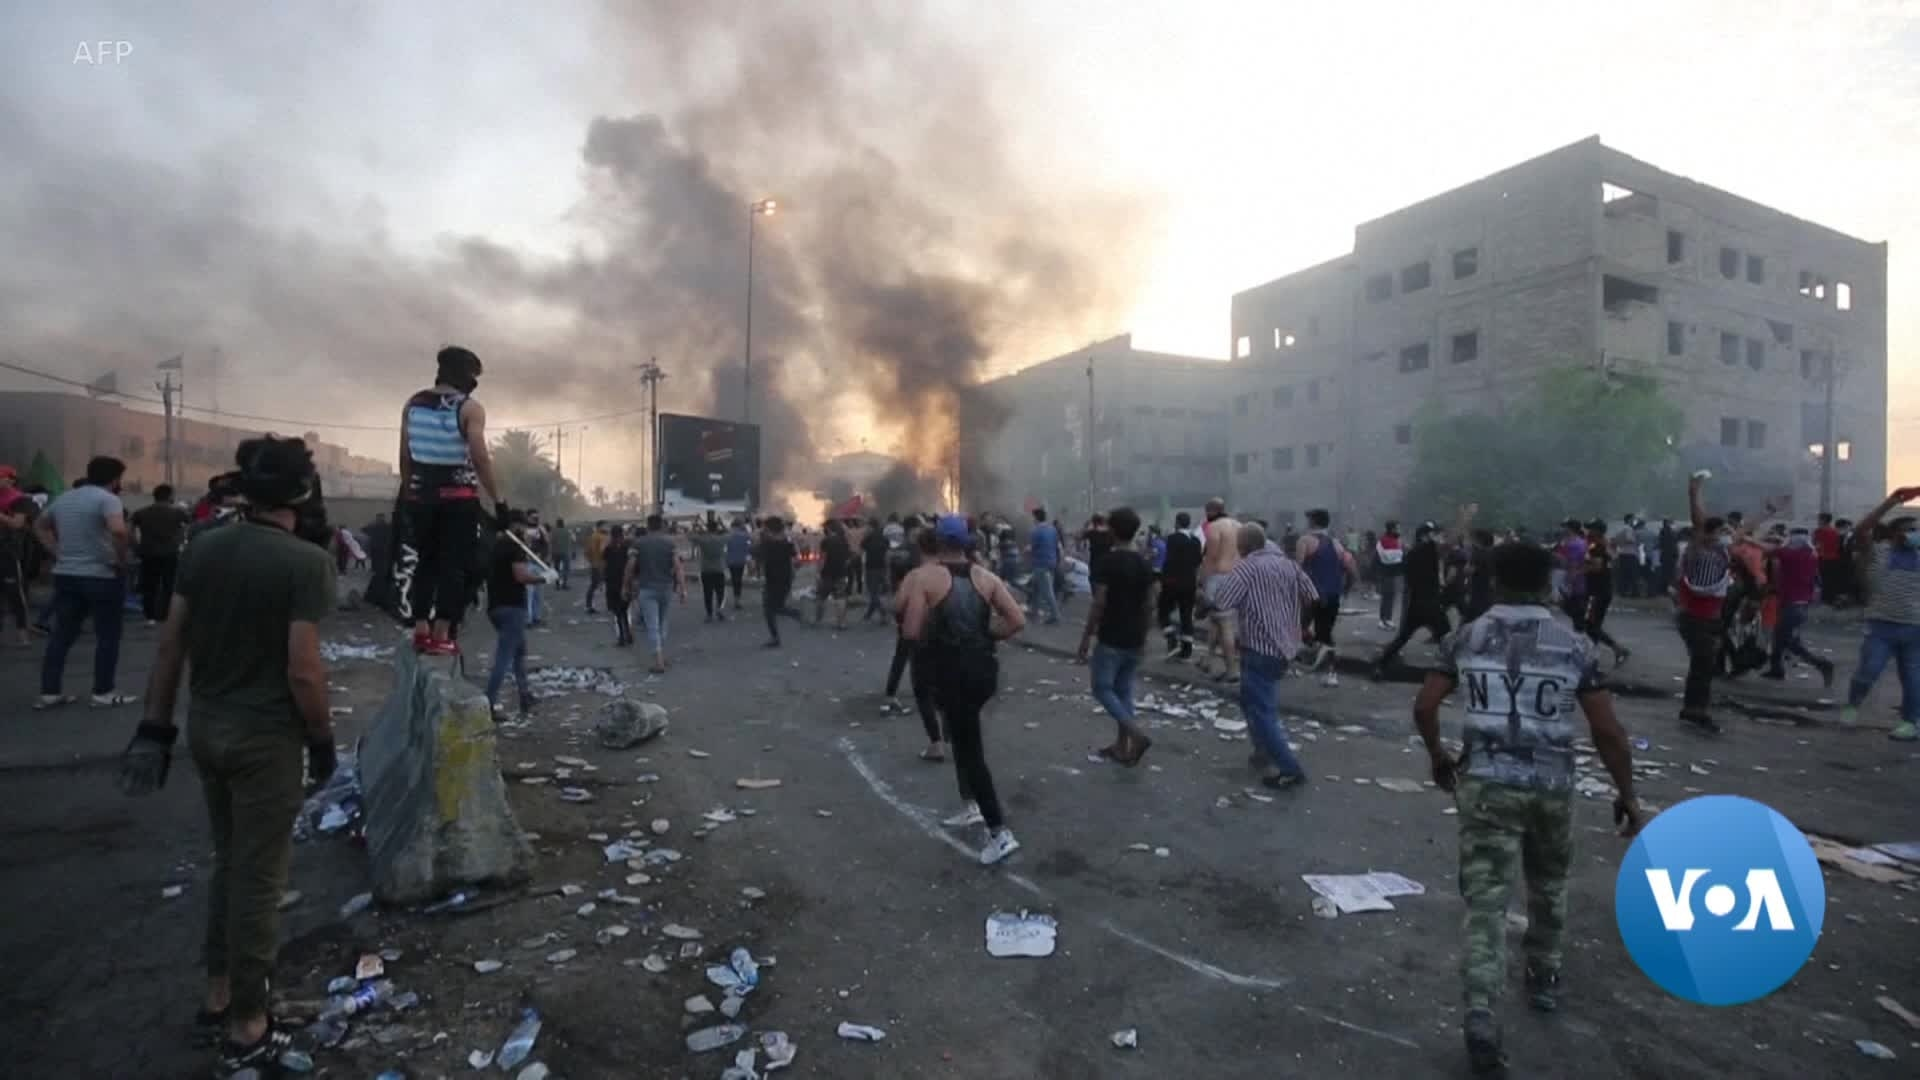 Iraq's Prime Minister Promises to Listen to Grievances After Deadly Protests